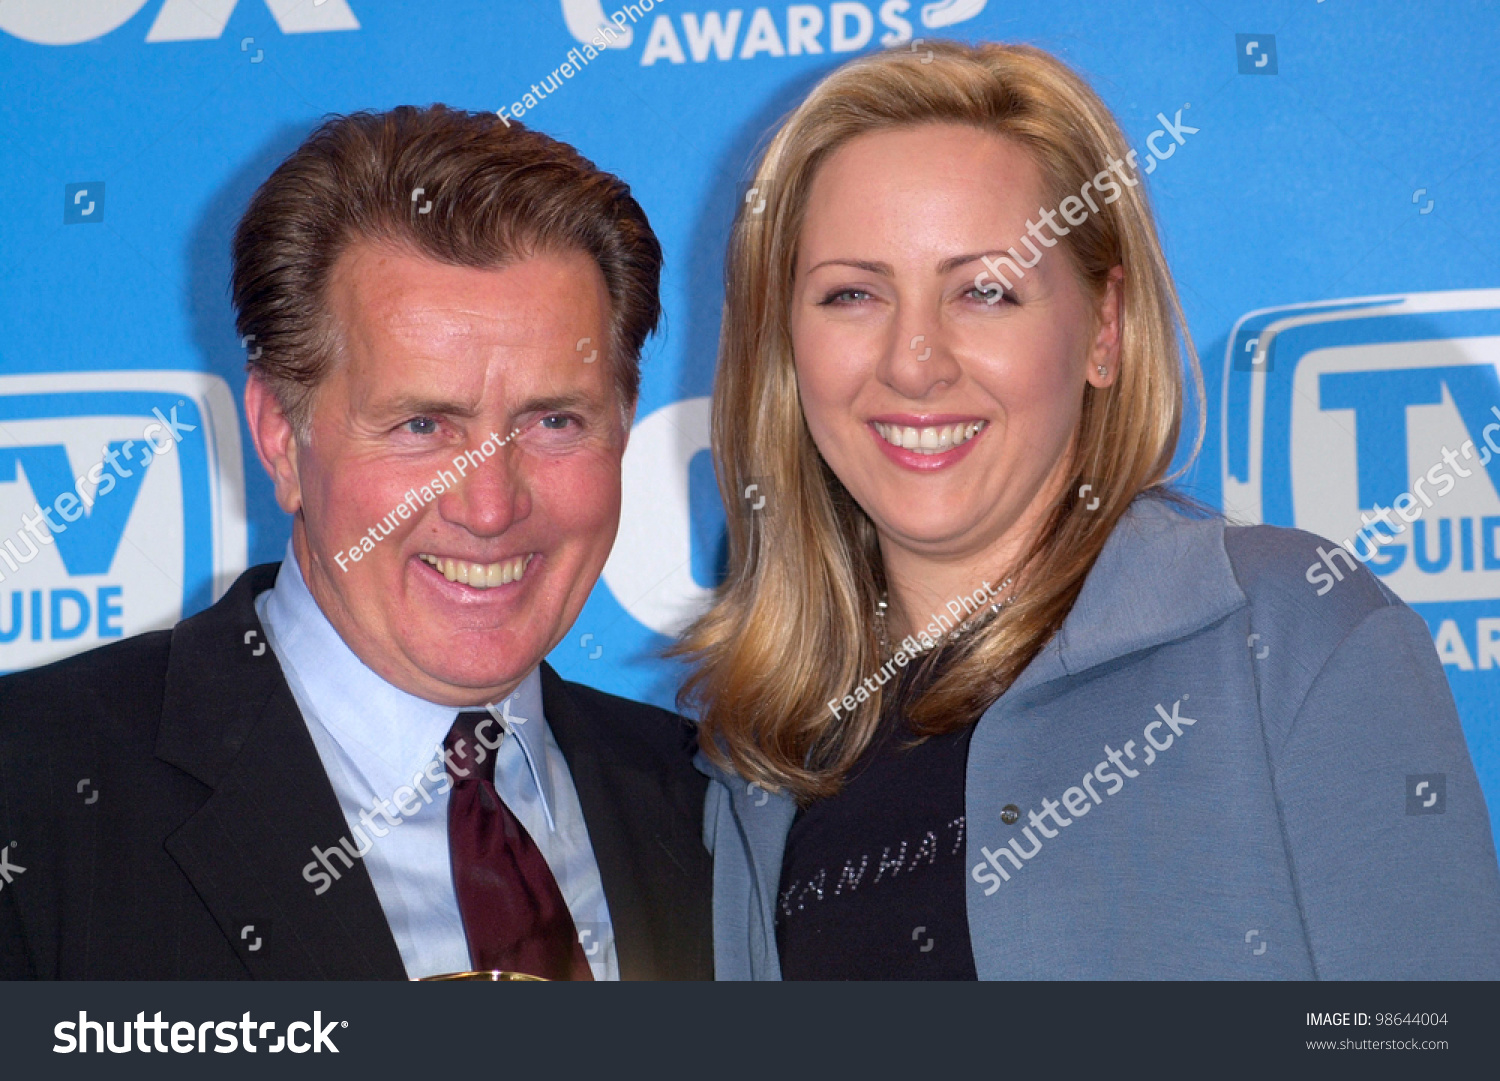 actor martin sheen daughter renee estevez stock photo 98644004 actor martin sheen daughter renee estevez at the 3rd annual tv guide awards in los